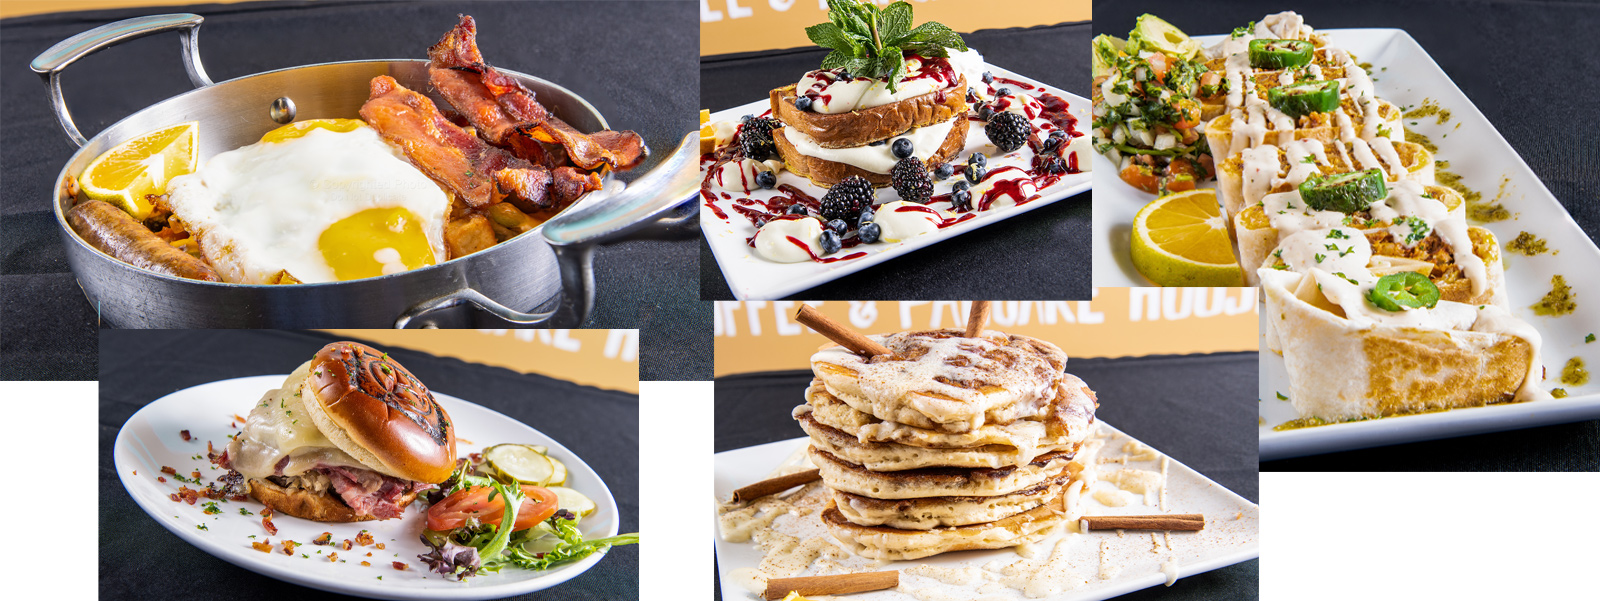 Collage of photos showing the range of food at QC Coffee and Pancake House, including cinnamon roll pancakes, breakfast burgers, wraps, and more